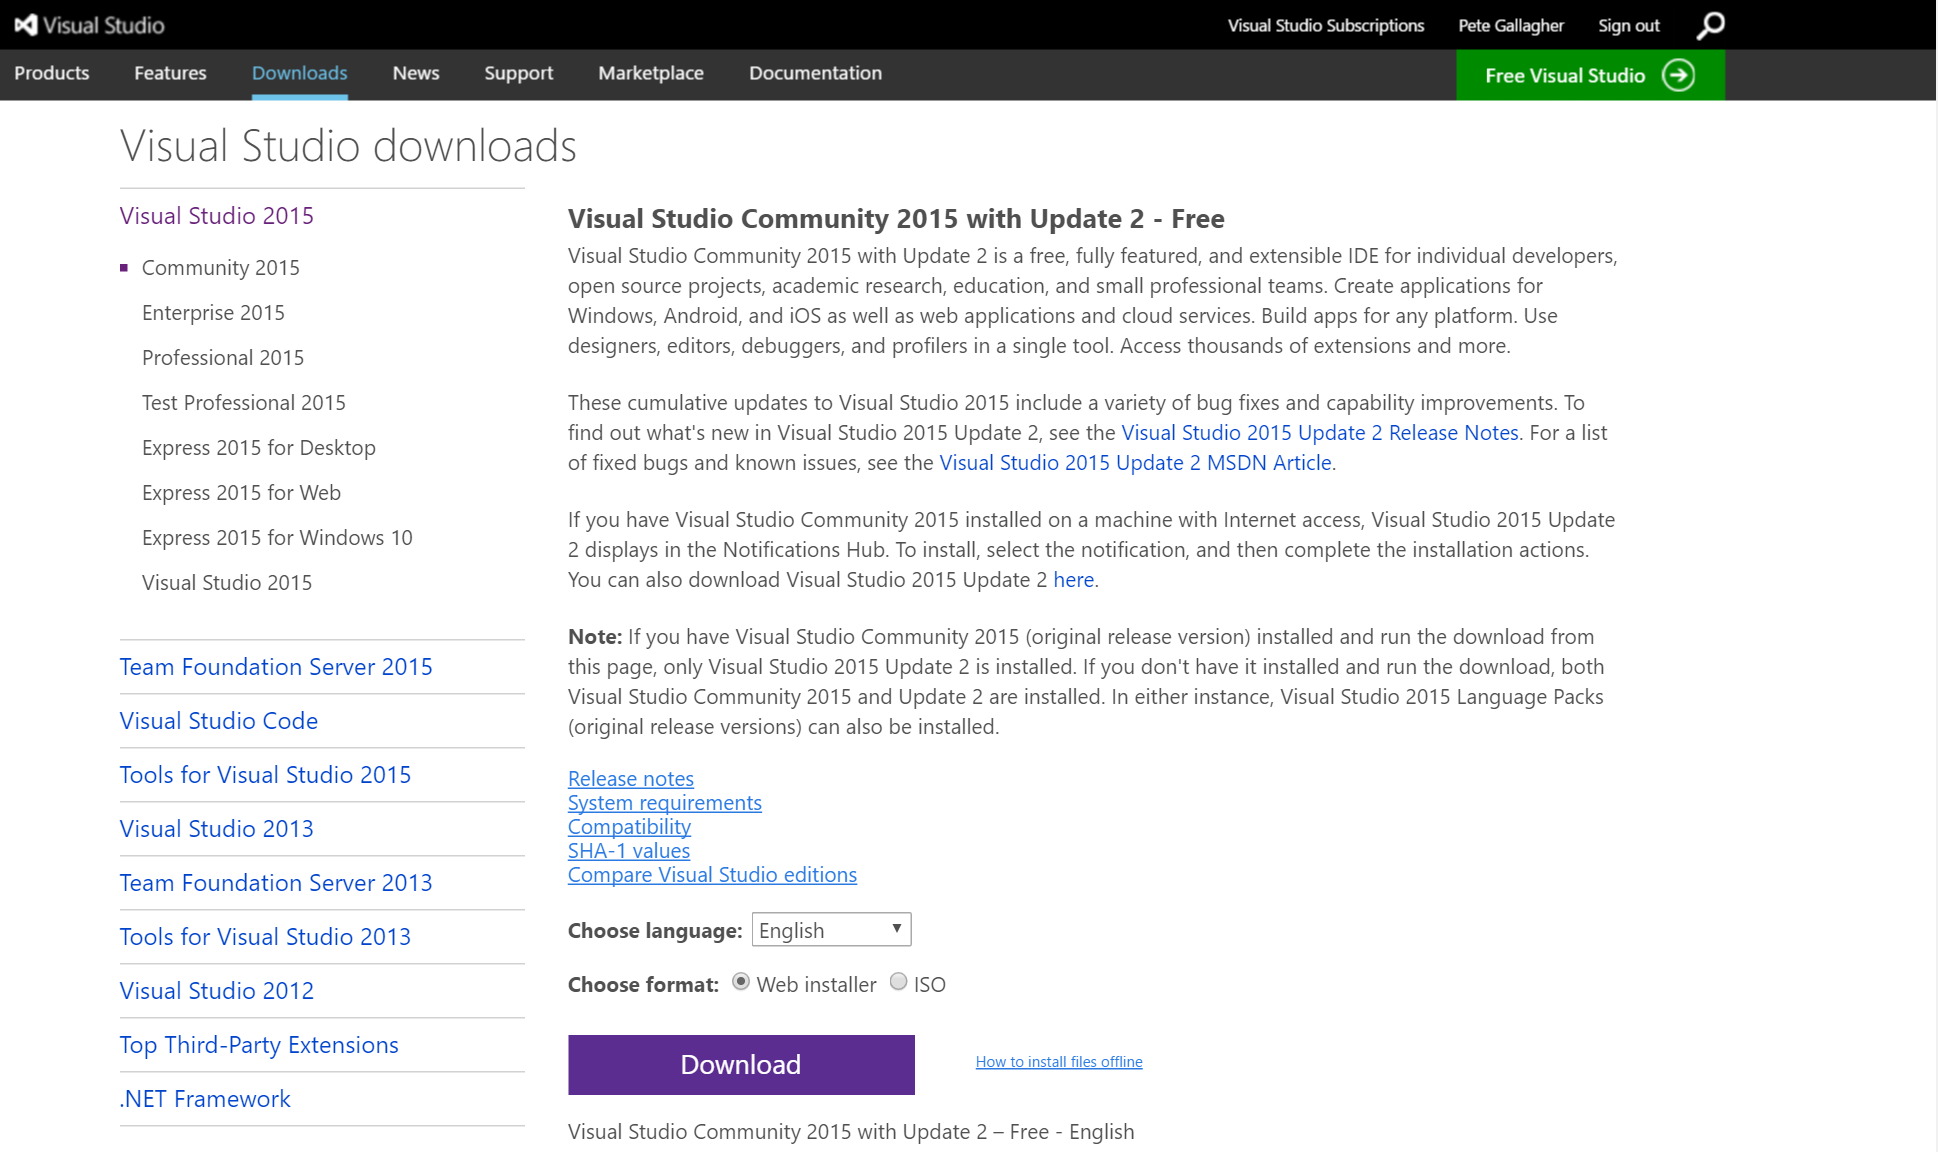 09 - Download Visual Studio